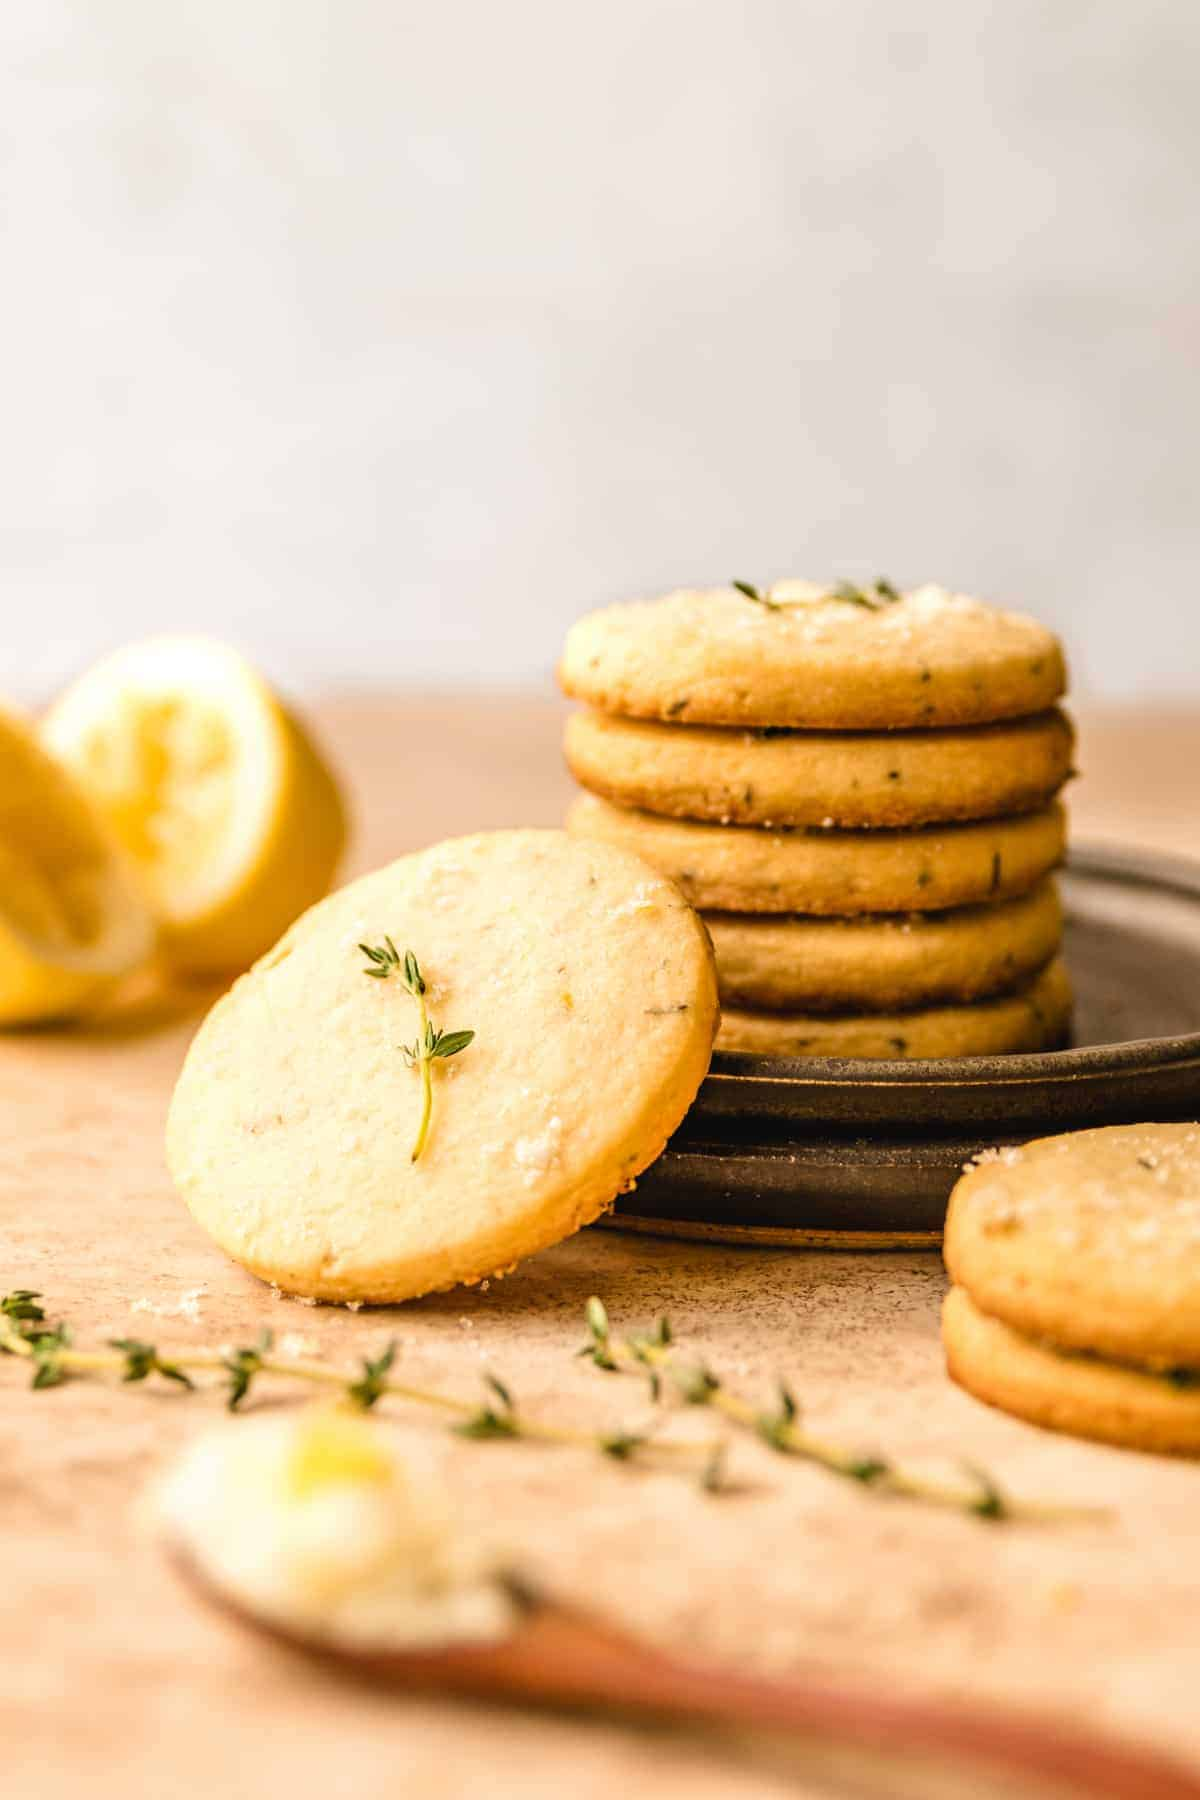 Make these easy lemon thyme shortbread cookies to enjoy with friends.